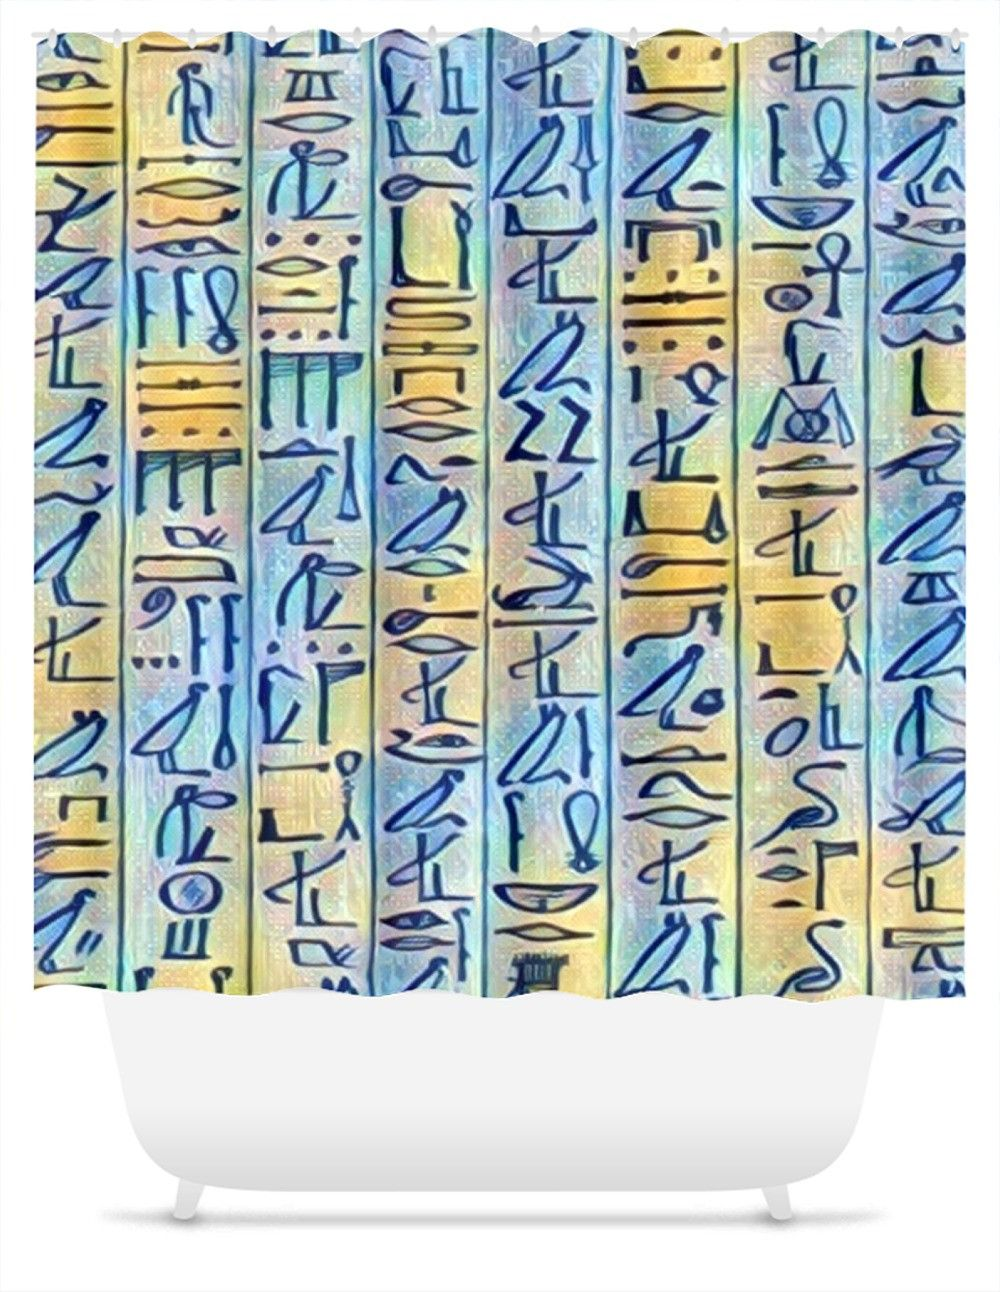 Egyptian Hieroglyphics (Blue/gold) Shower Curtain. Add drama to your bath  décor - Egyptian Hieroglyphics (Blue/gold) Shower Curtain. Add Drama To